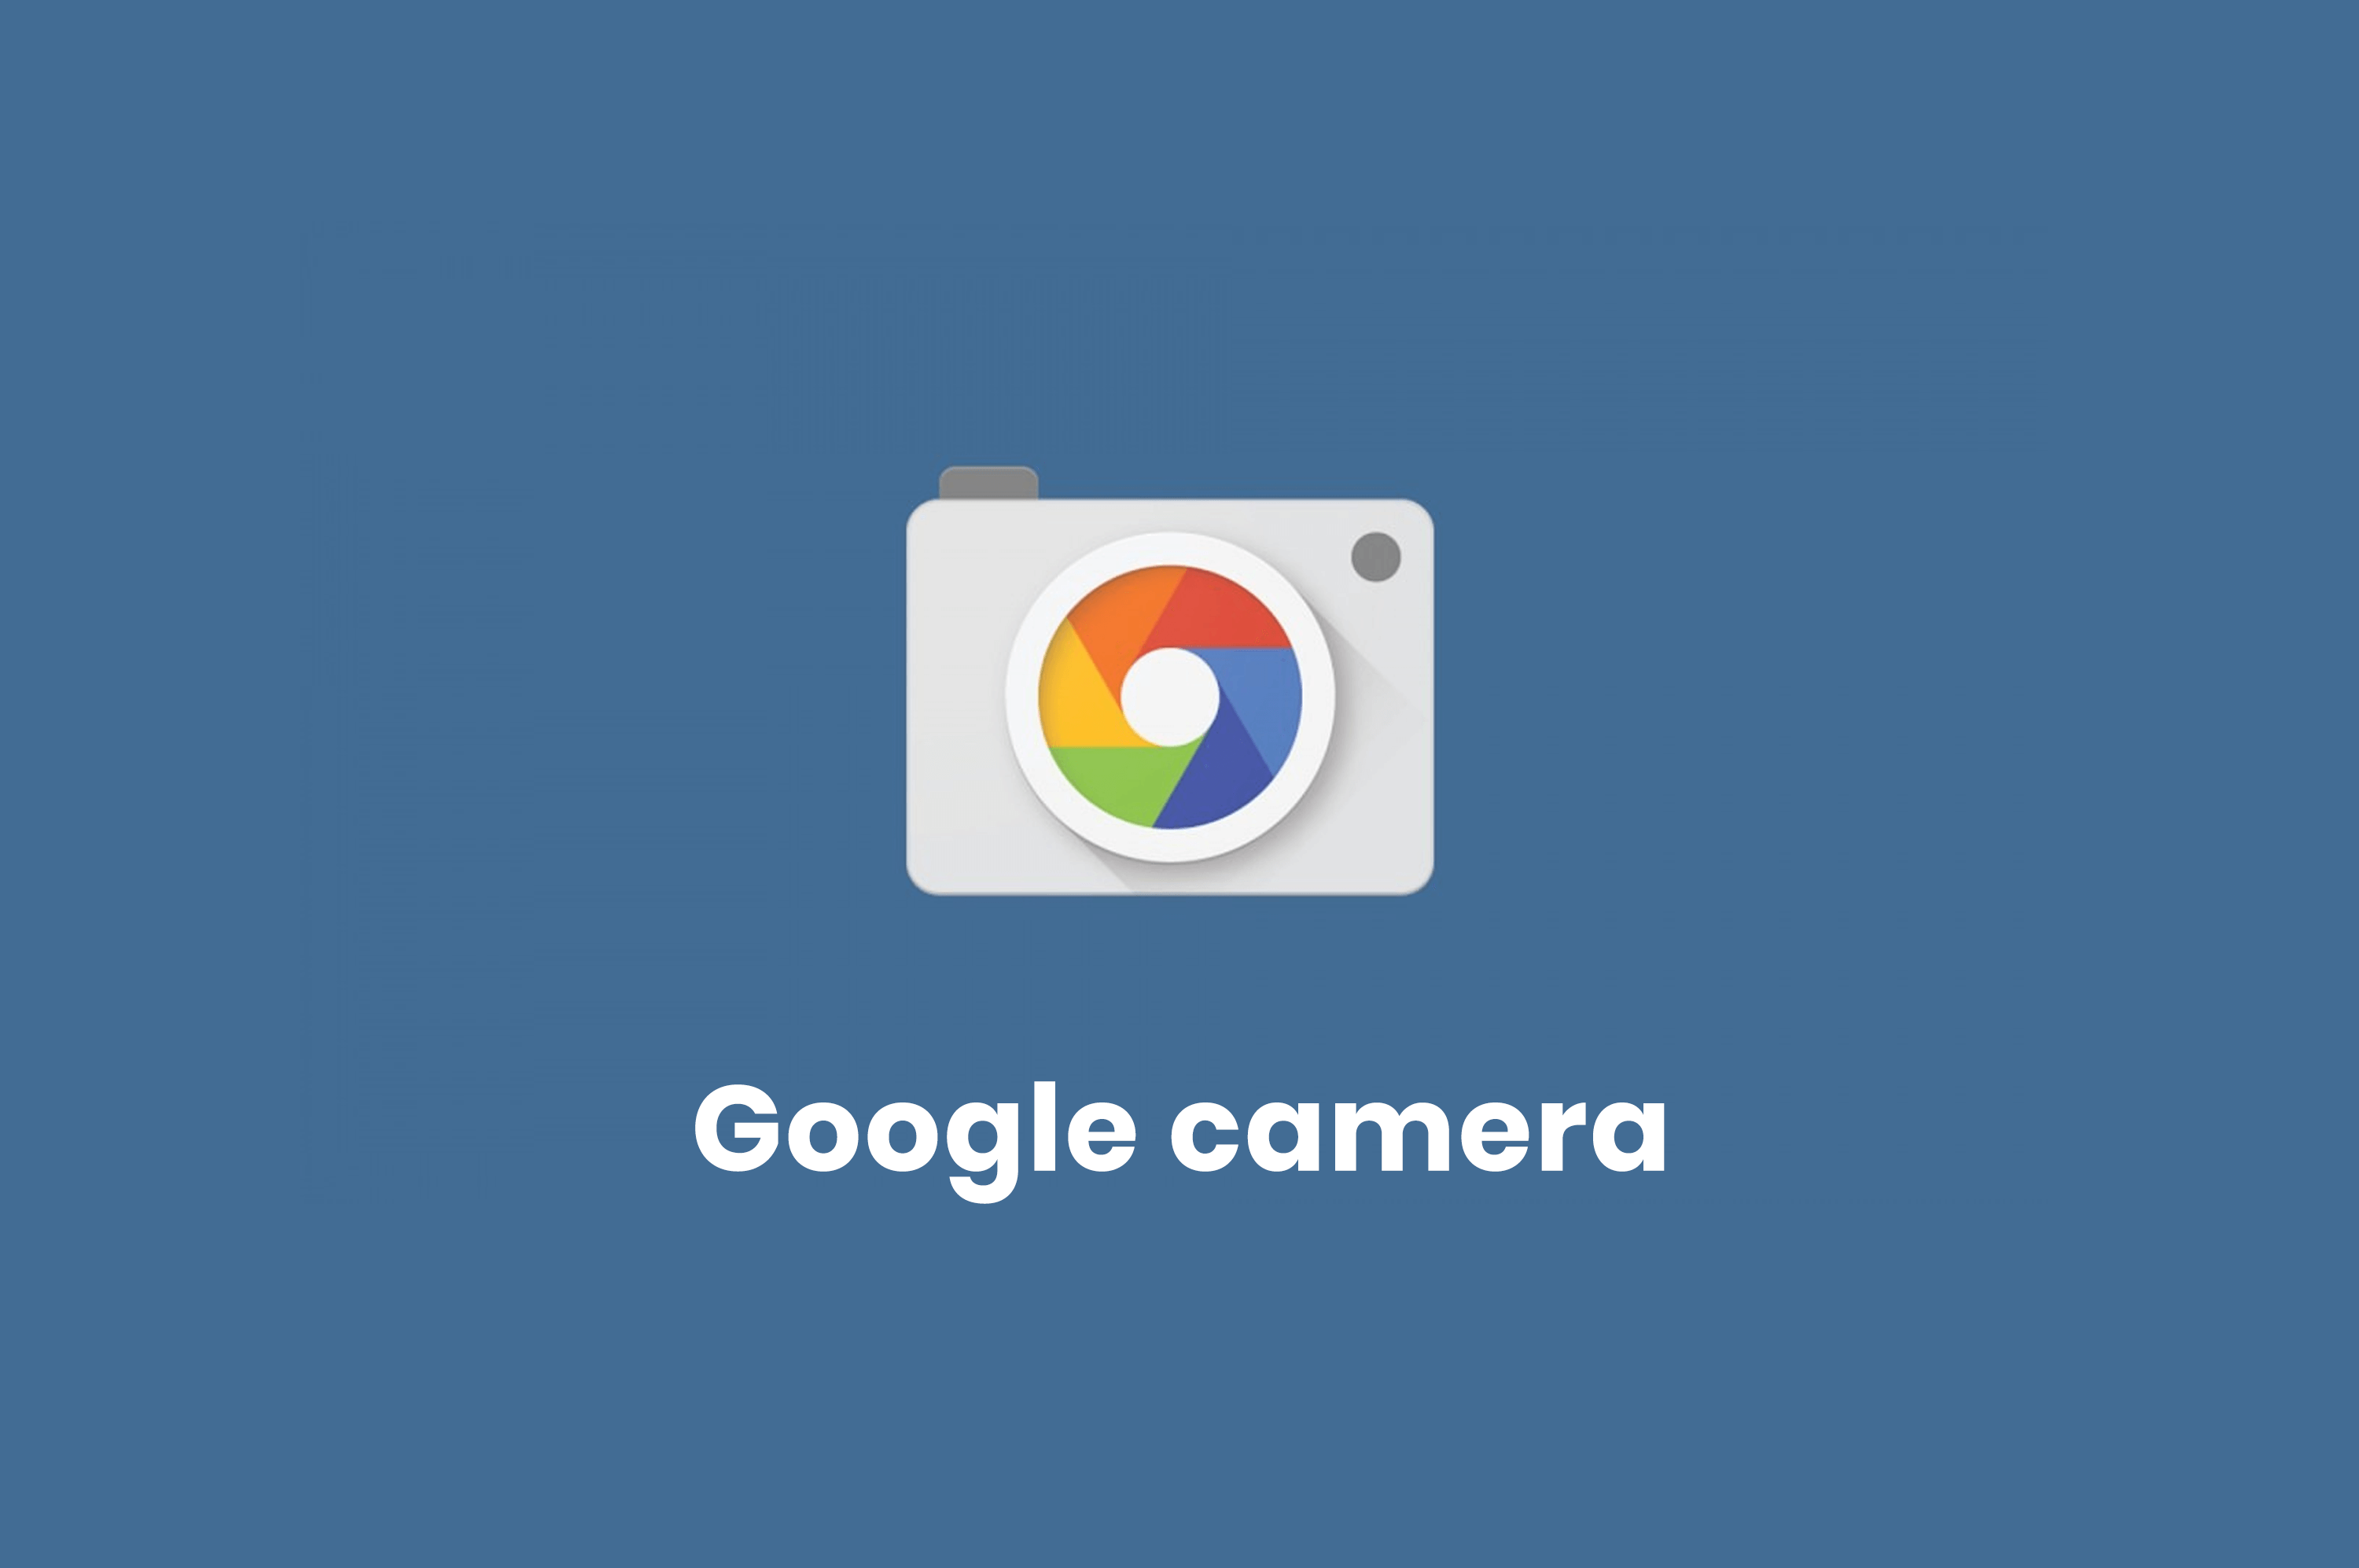 logo of google camera app